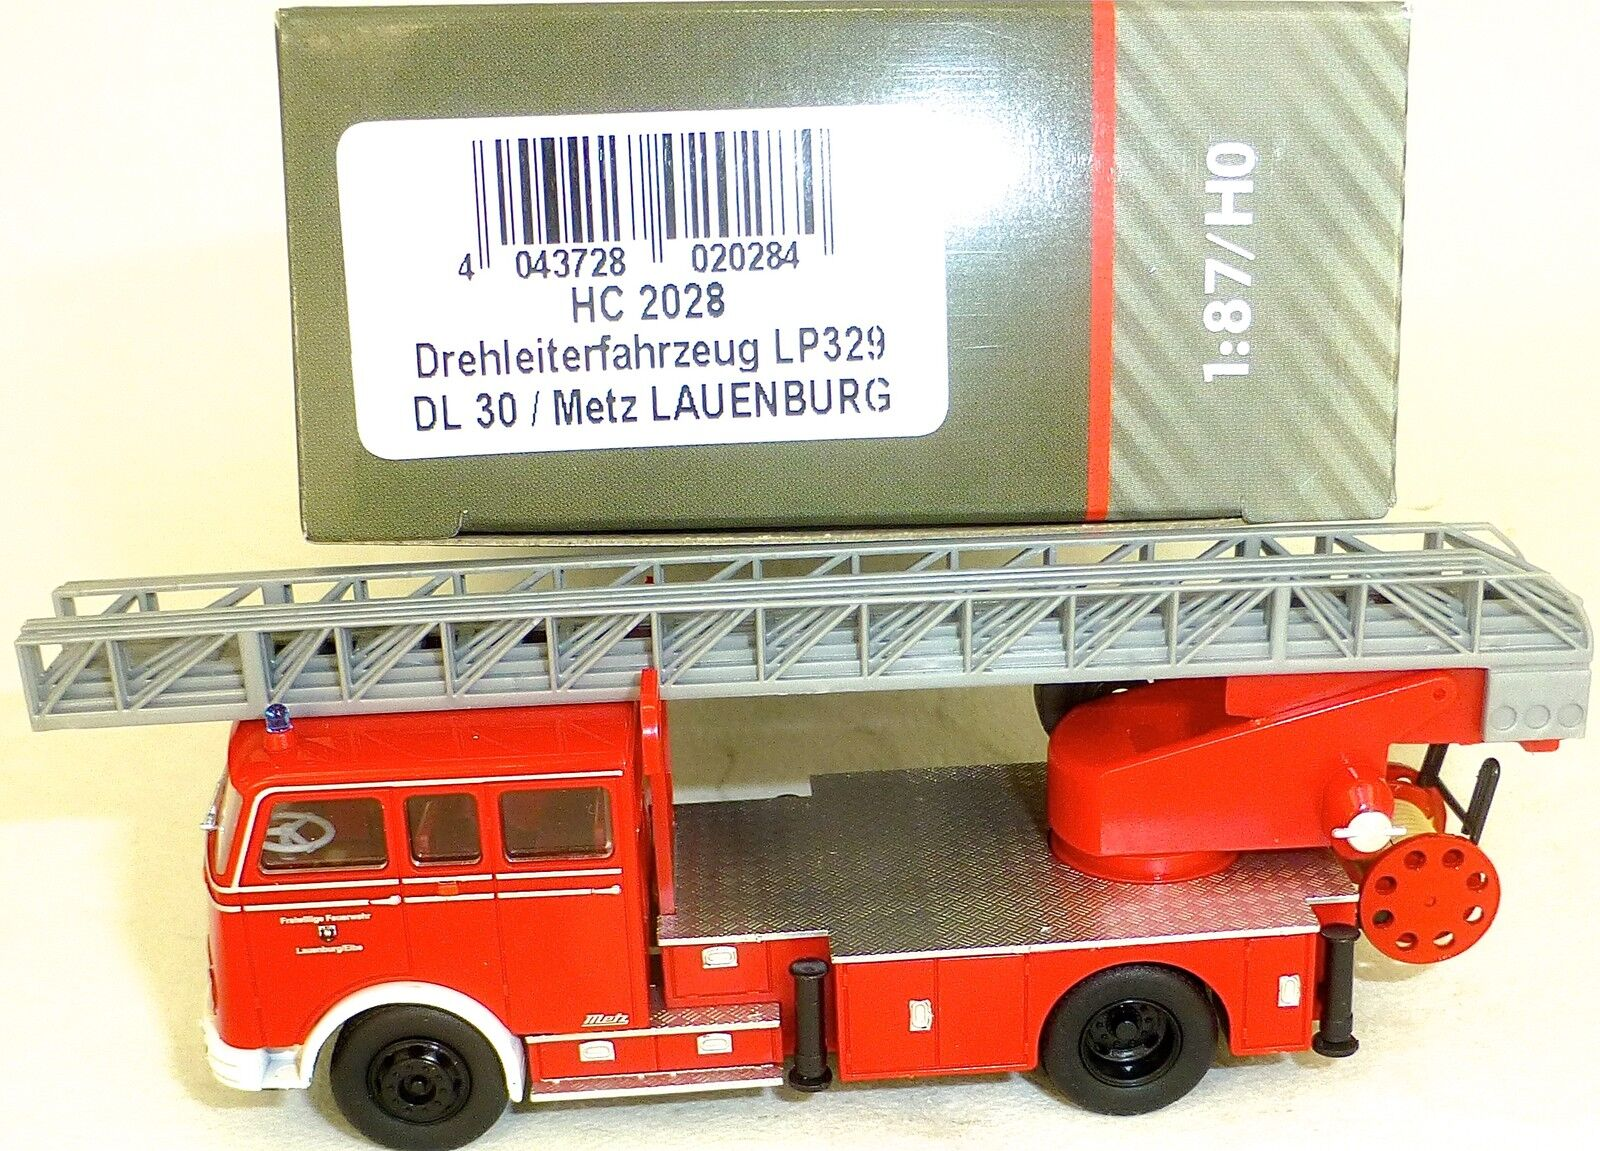 Turntable Ladder Vehicle Lp329 Dl30 Metz Lauenburg Heico Hc2028 Nip Μ